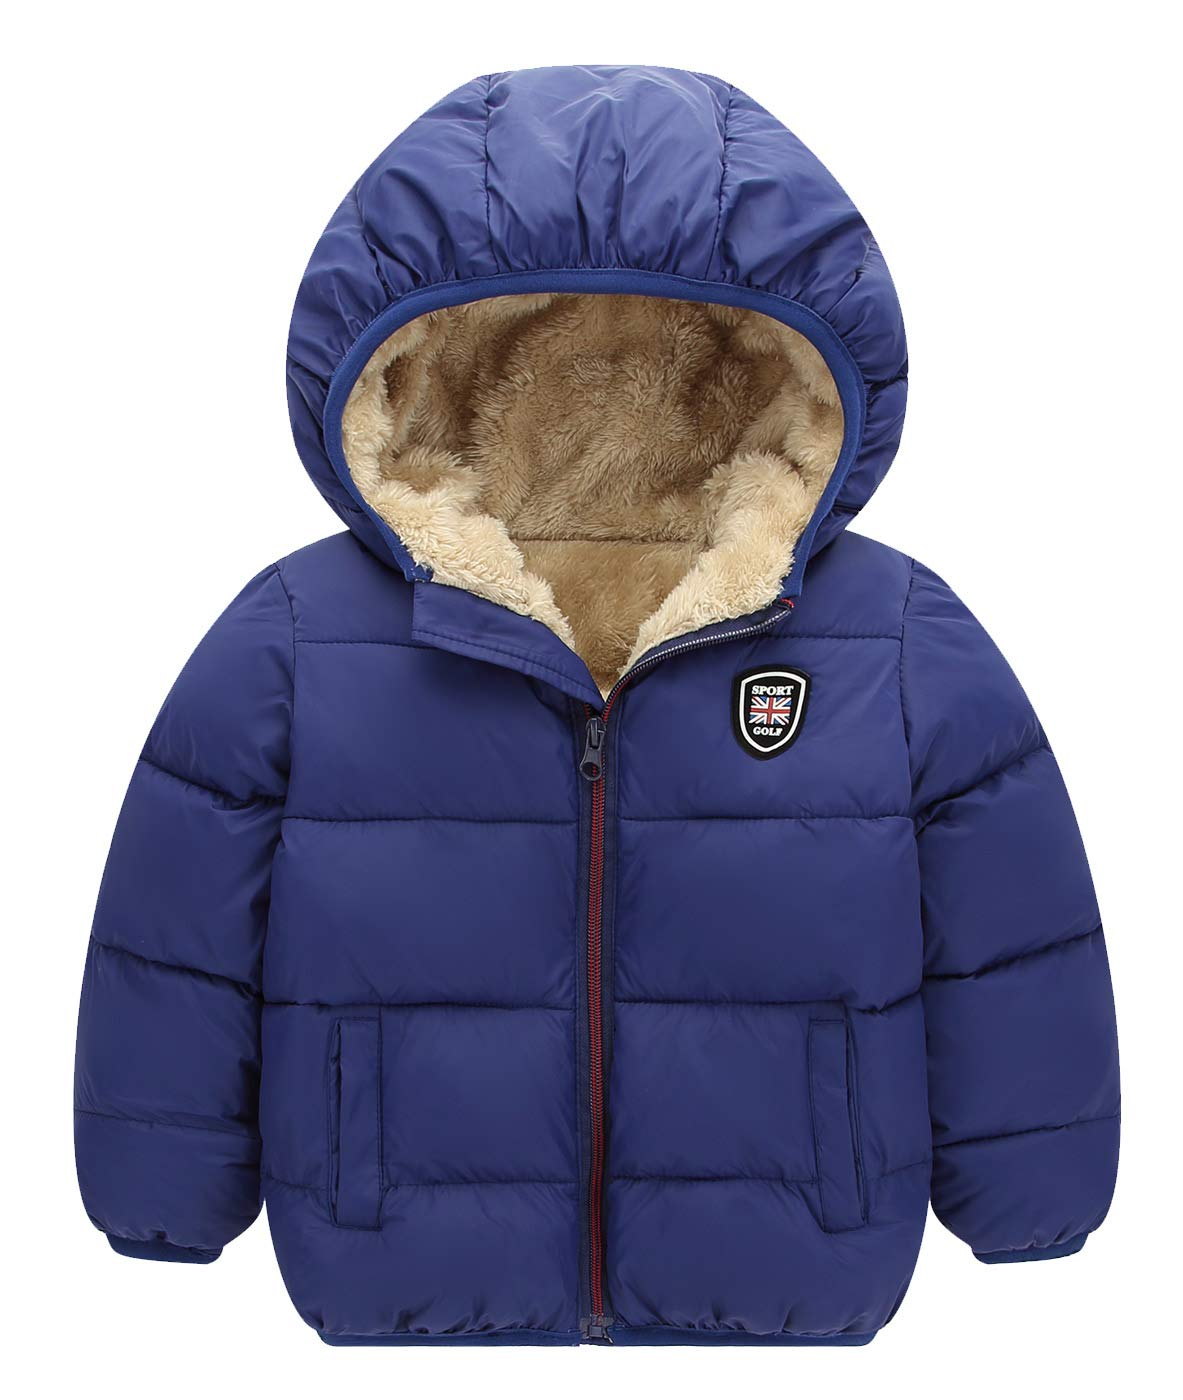 Happy Cherry Baby Hooded Fleece Lined Coat Winter Warm Puffer Down Jacket Outerwear Quilted 3T-4T Blue